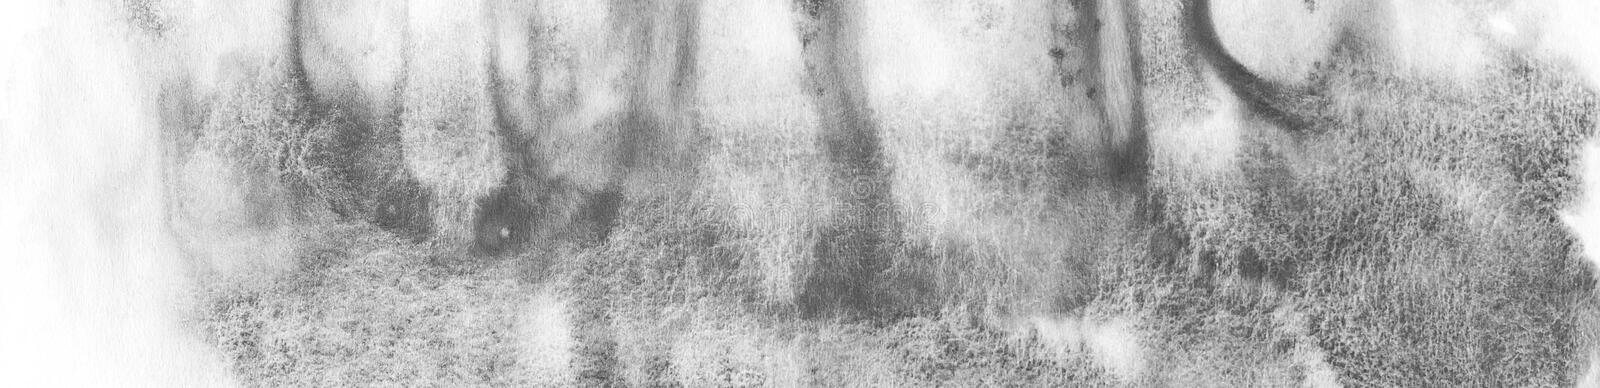 Banner of Black abstract watercolor macro texture background. Abstract aquarelle texture grayscale backdrop. stock photos